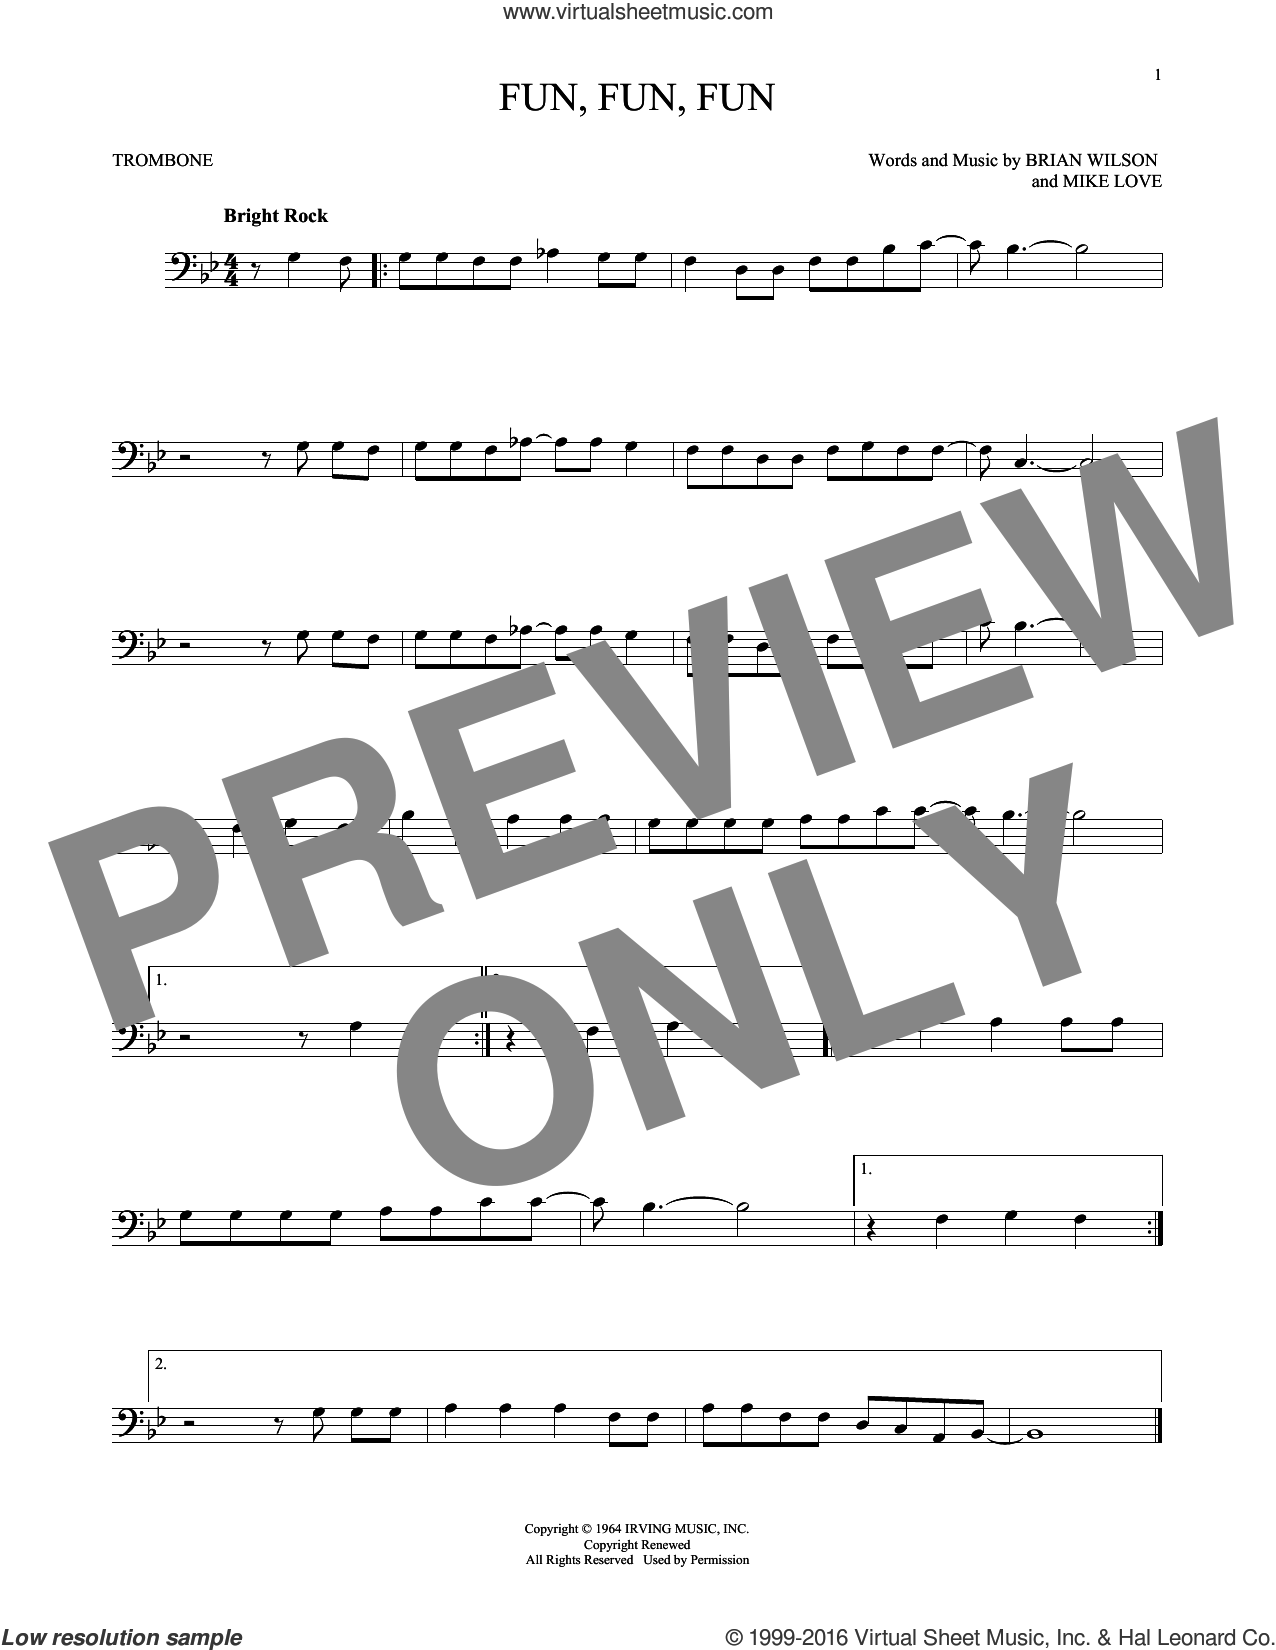 Fun, Fun, Fun sheet music for trombone solo by The Beach Boys, Brian Wilson and Mike Love, intermediate skill level